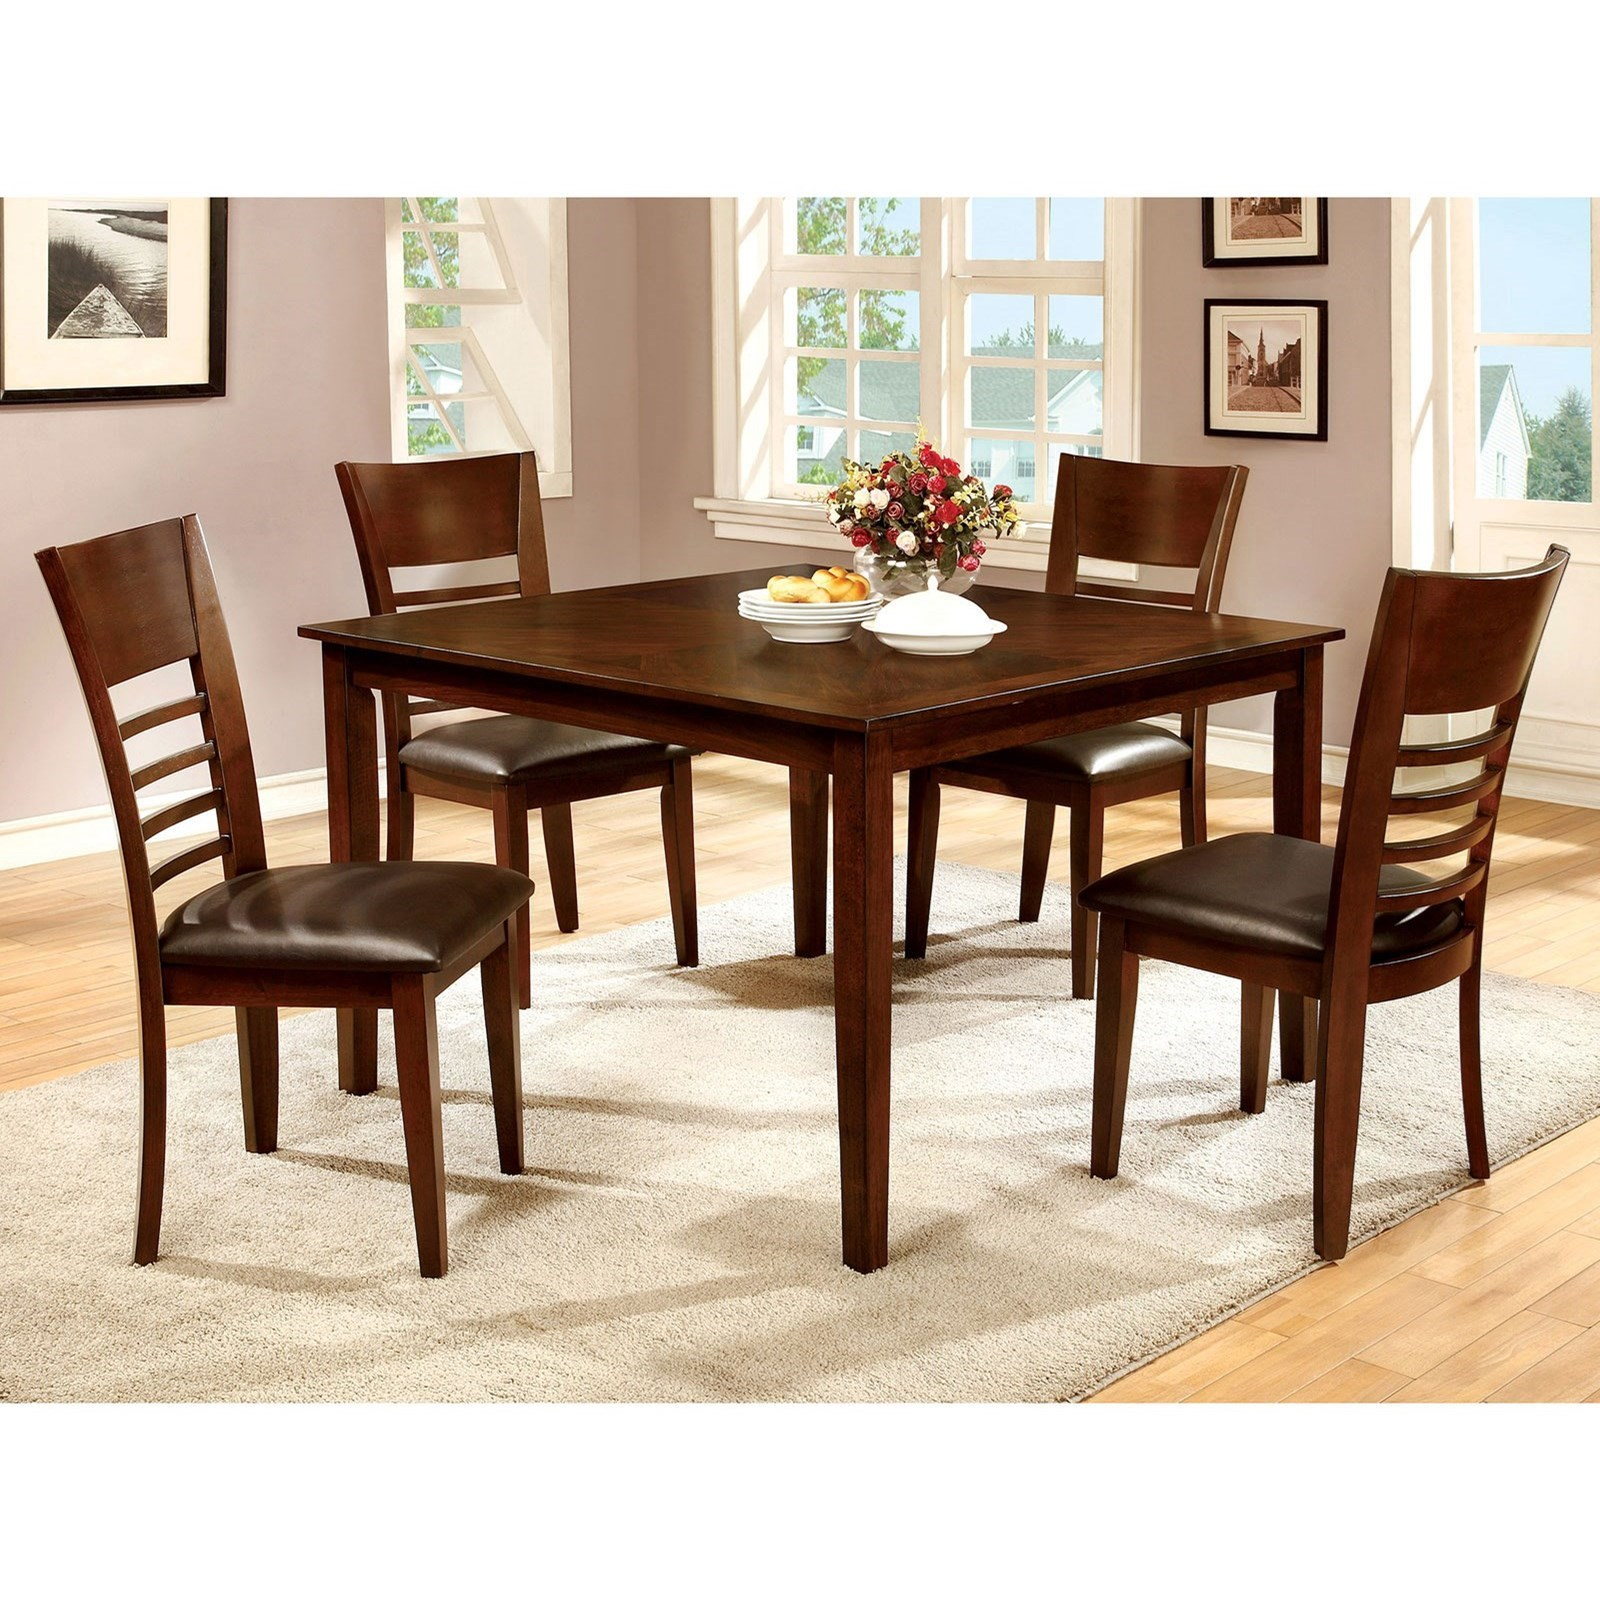 Hillsview Five Piece Dining Set by Furniture of America - FOA at Del Sol Furniture